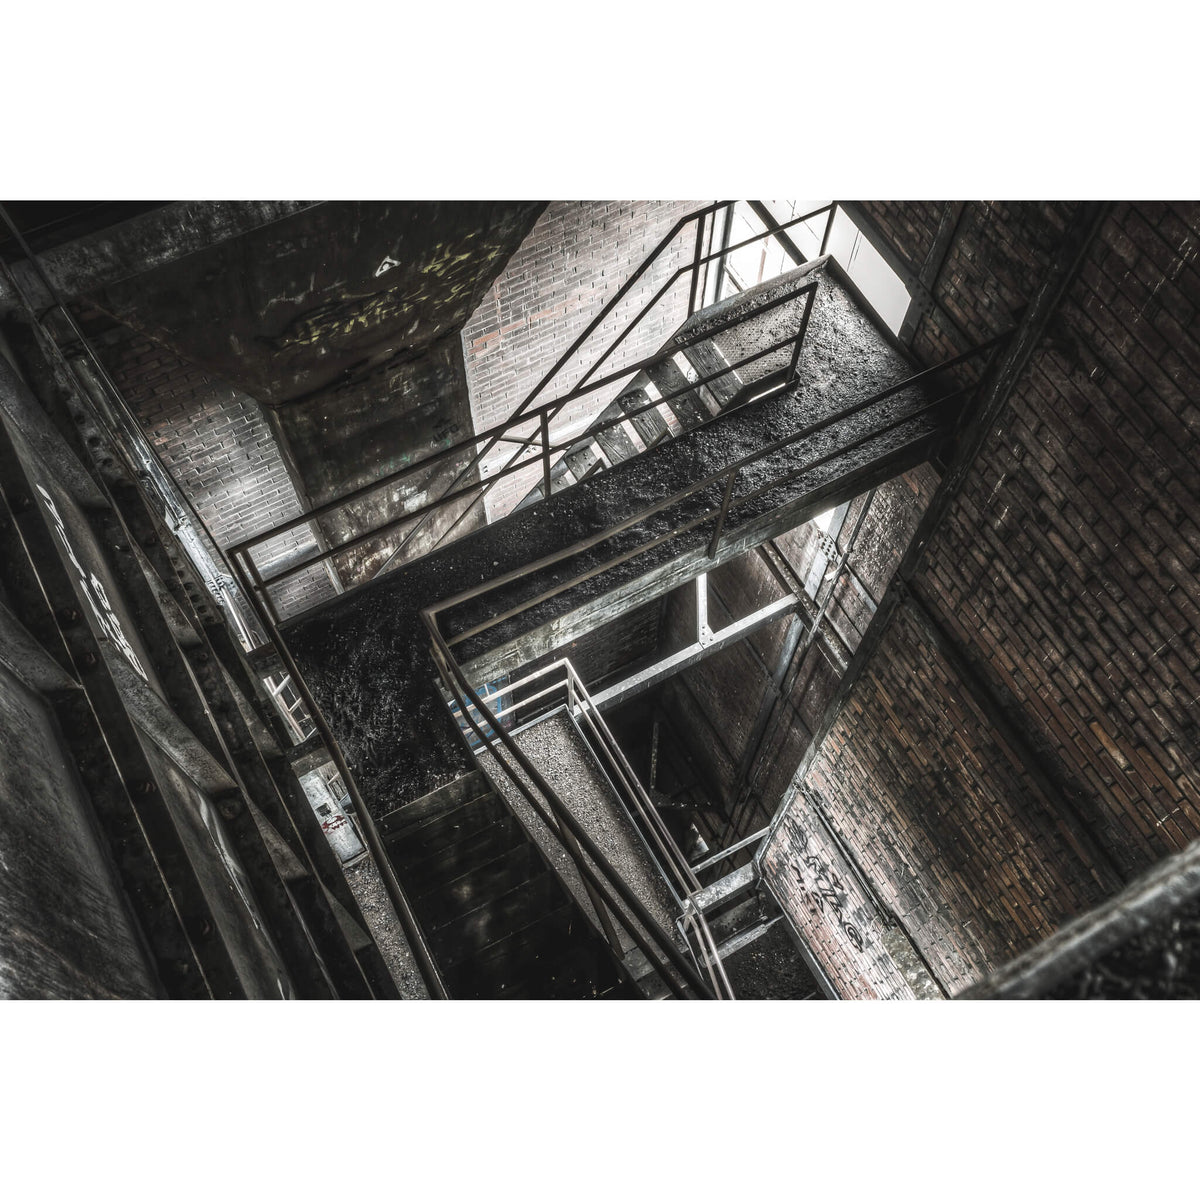 Looking Down Retort Building | Bathurst Gasworks Fine Art Print - Lost Collective Shop